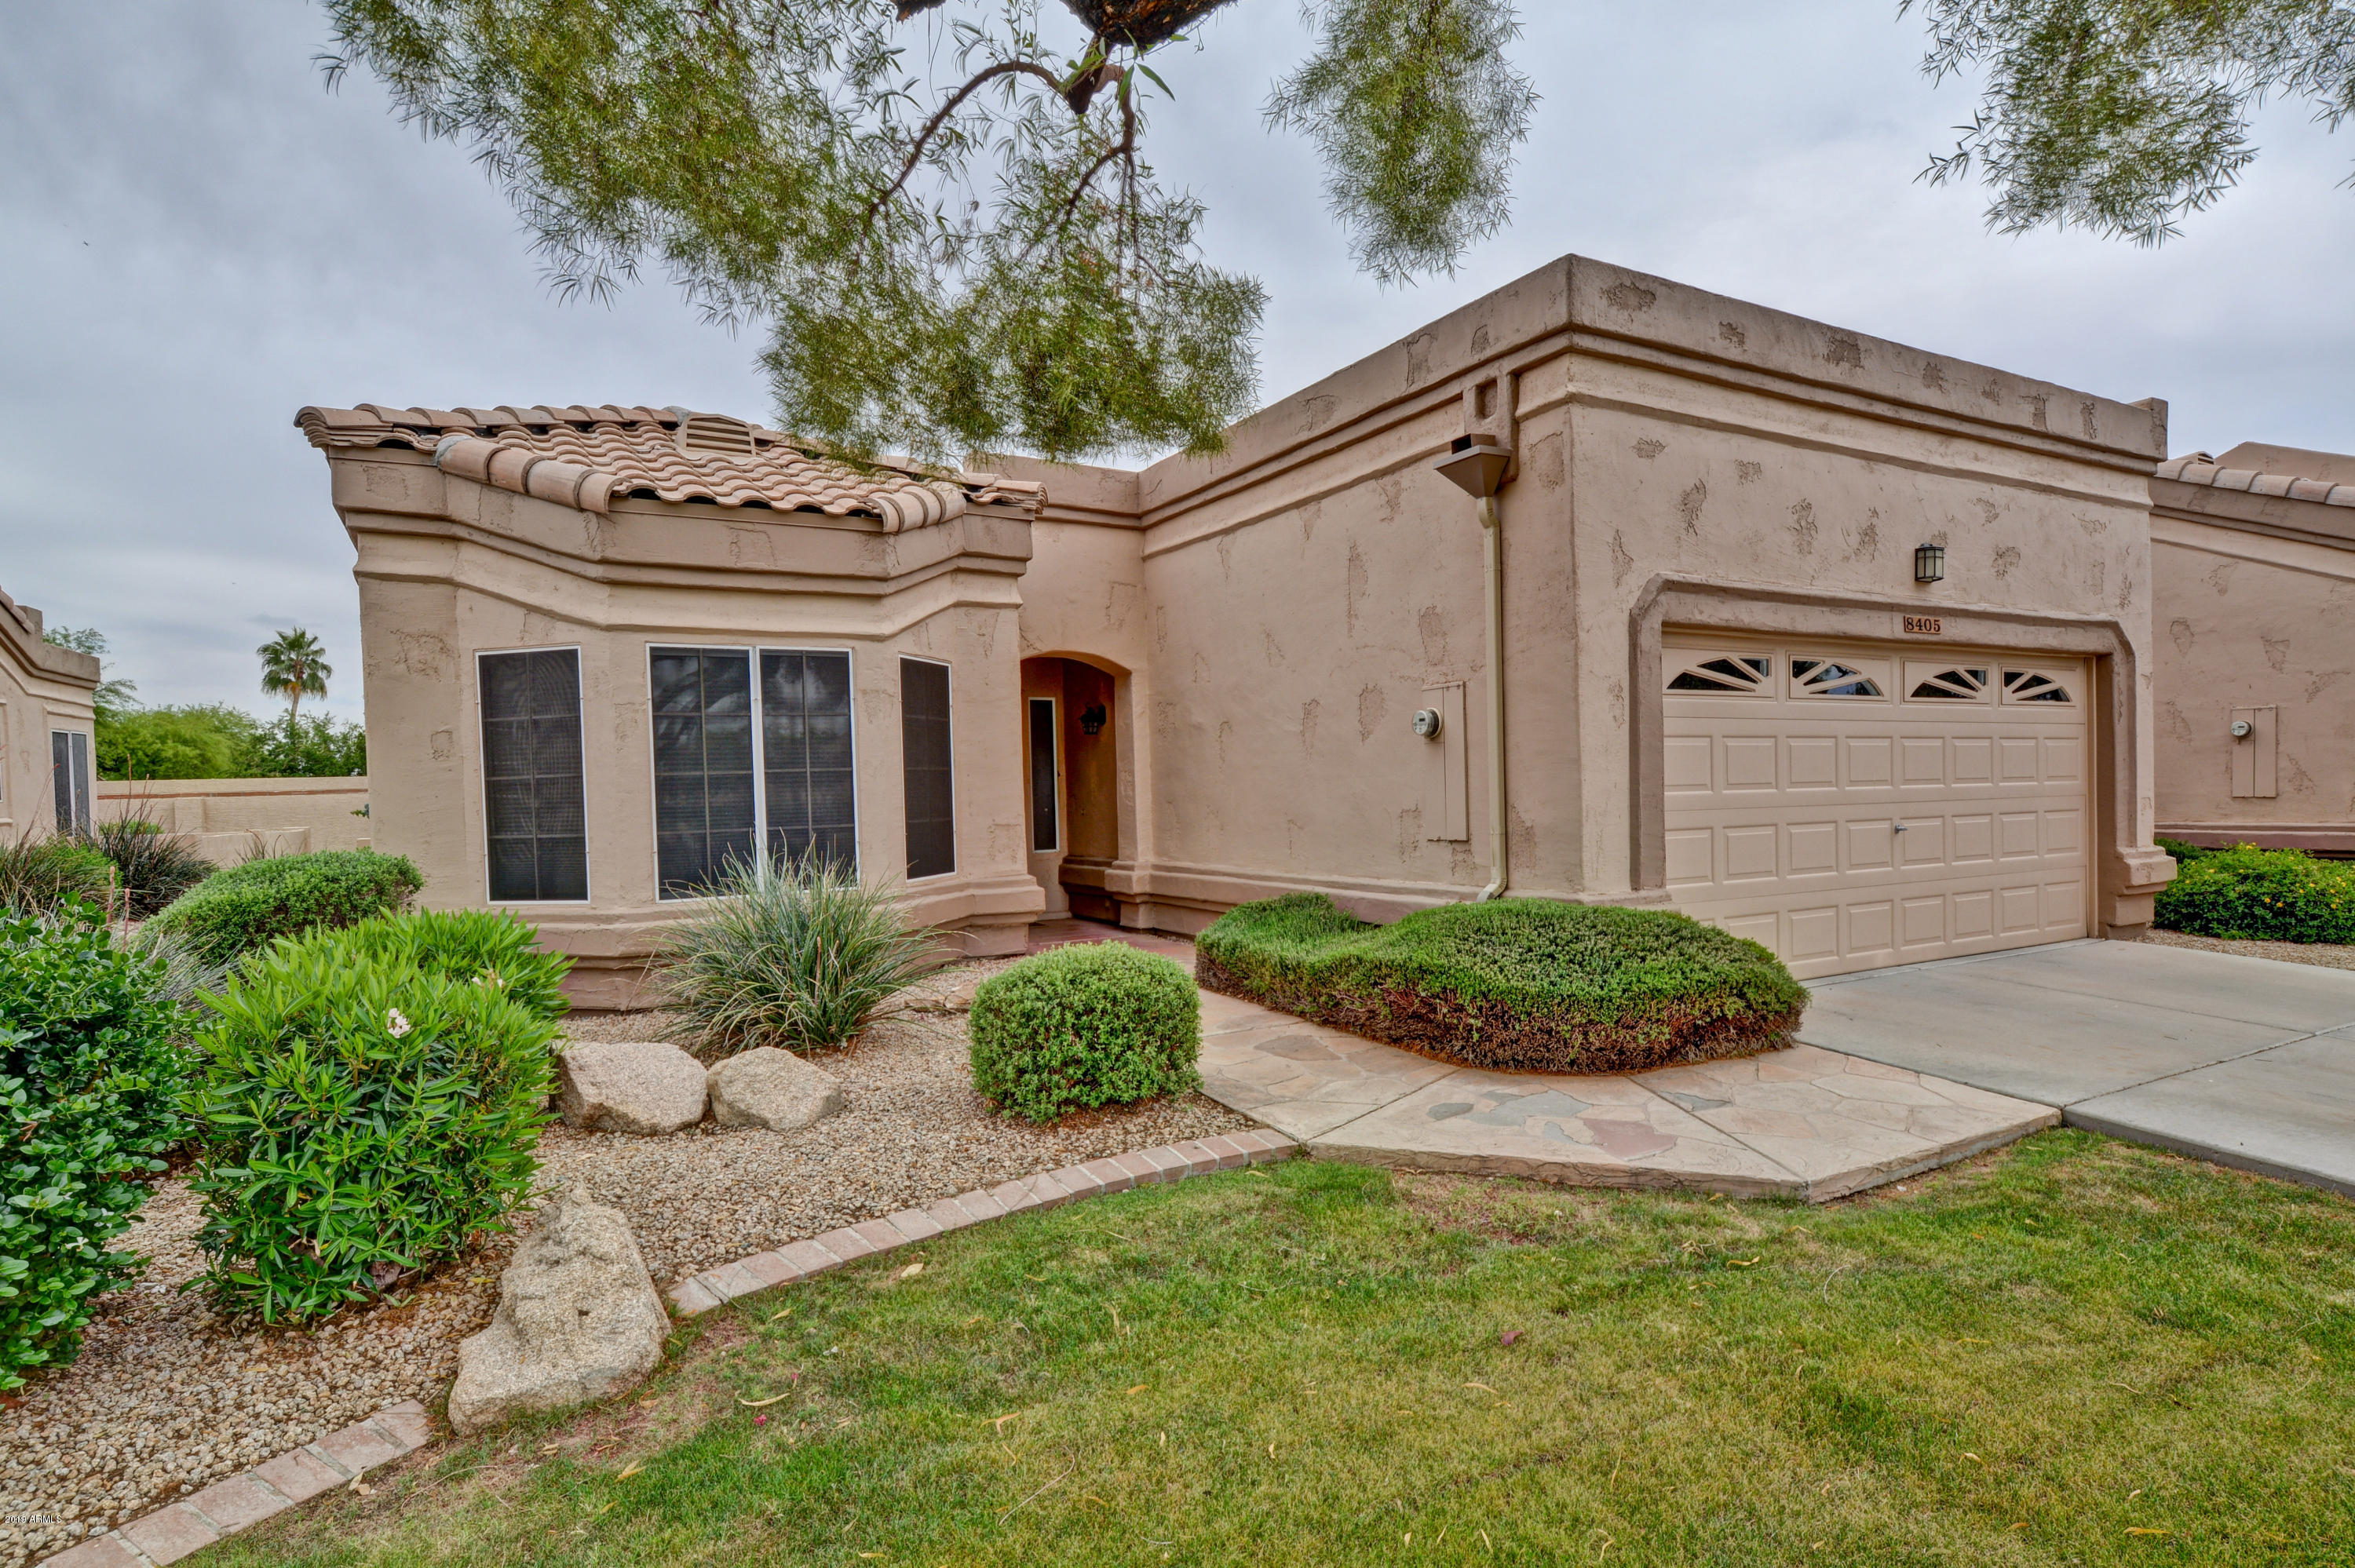 8405 W UTOPIA Road, one of homes for sale in Peoria